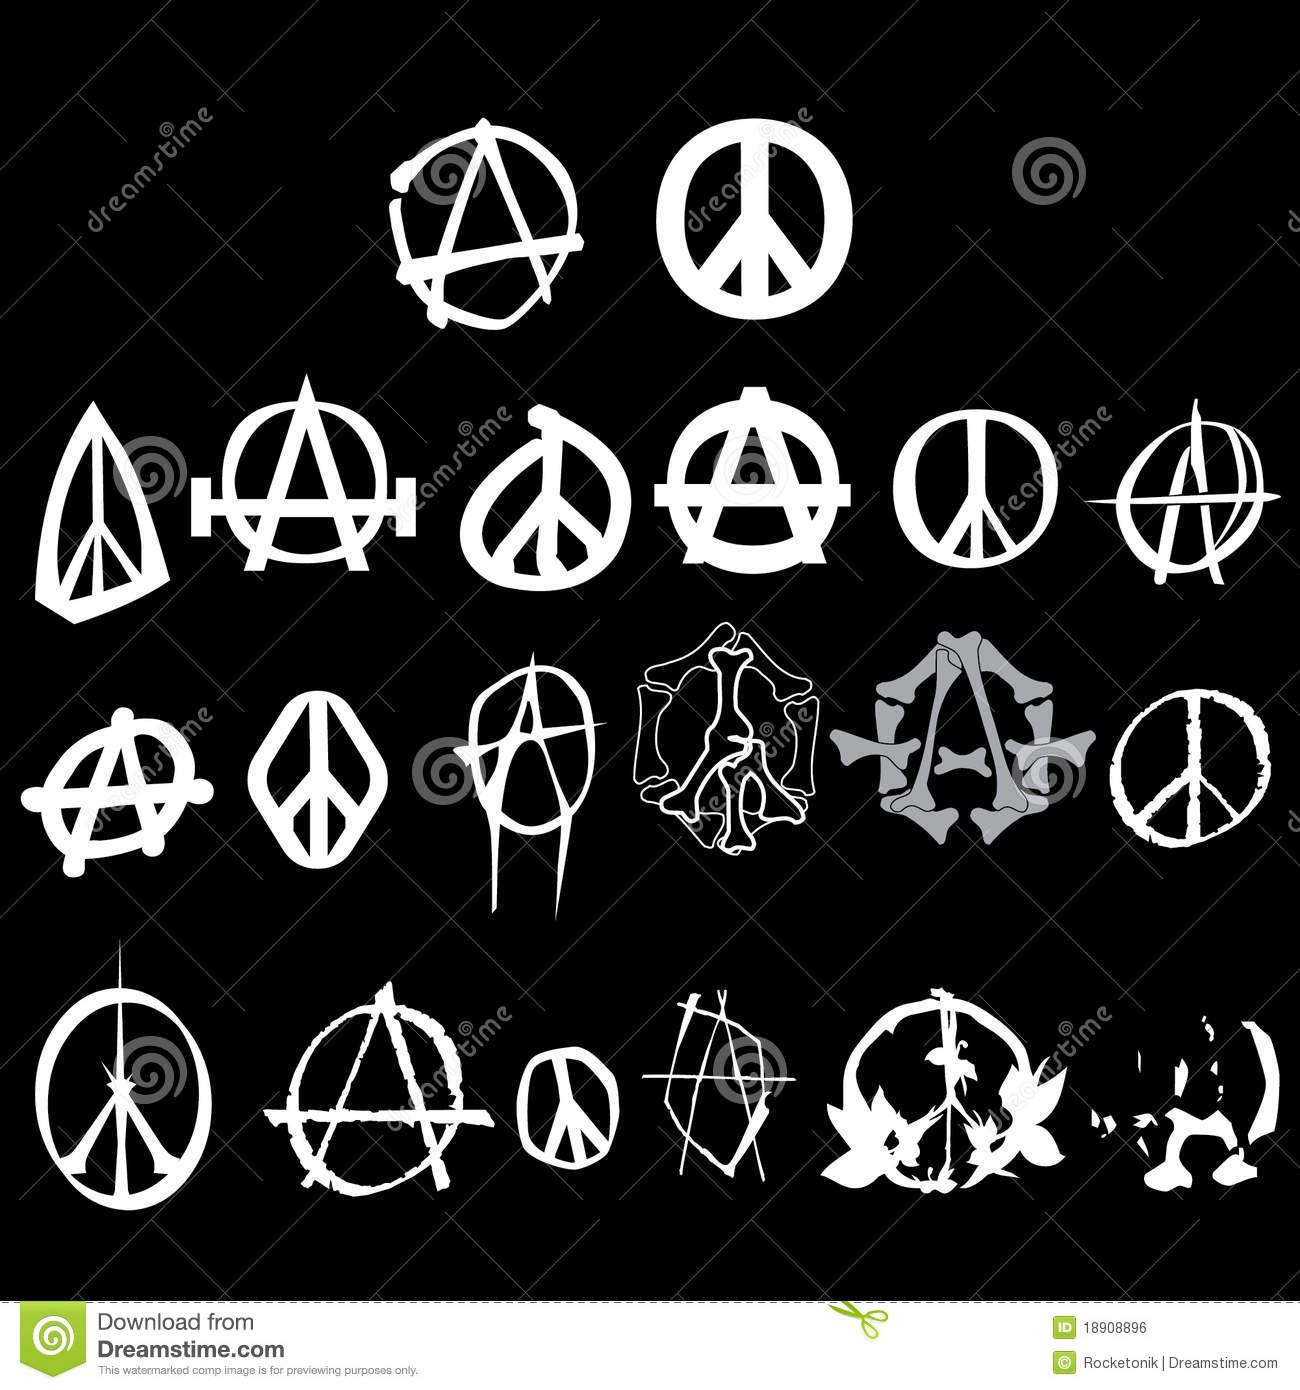 Symbol anarchy peace logo isolated vector stock vector symbol anarchy peace logo pack isolated vector royalty free stock image biocorpaavc Image collections